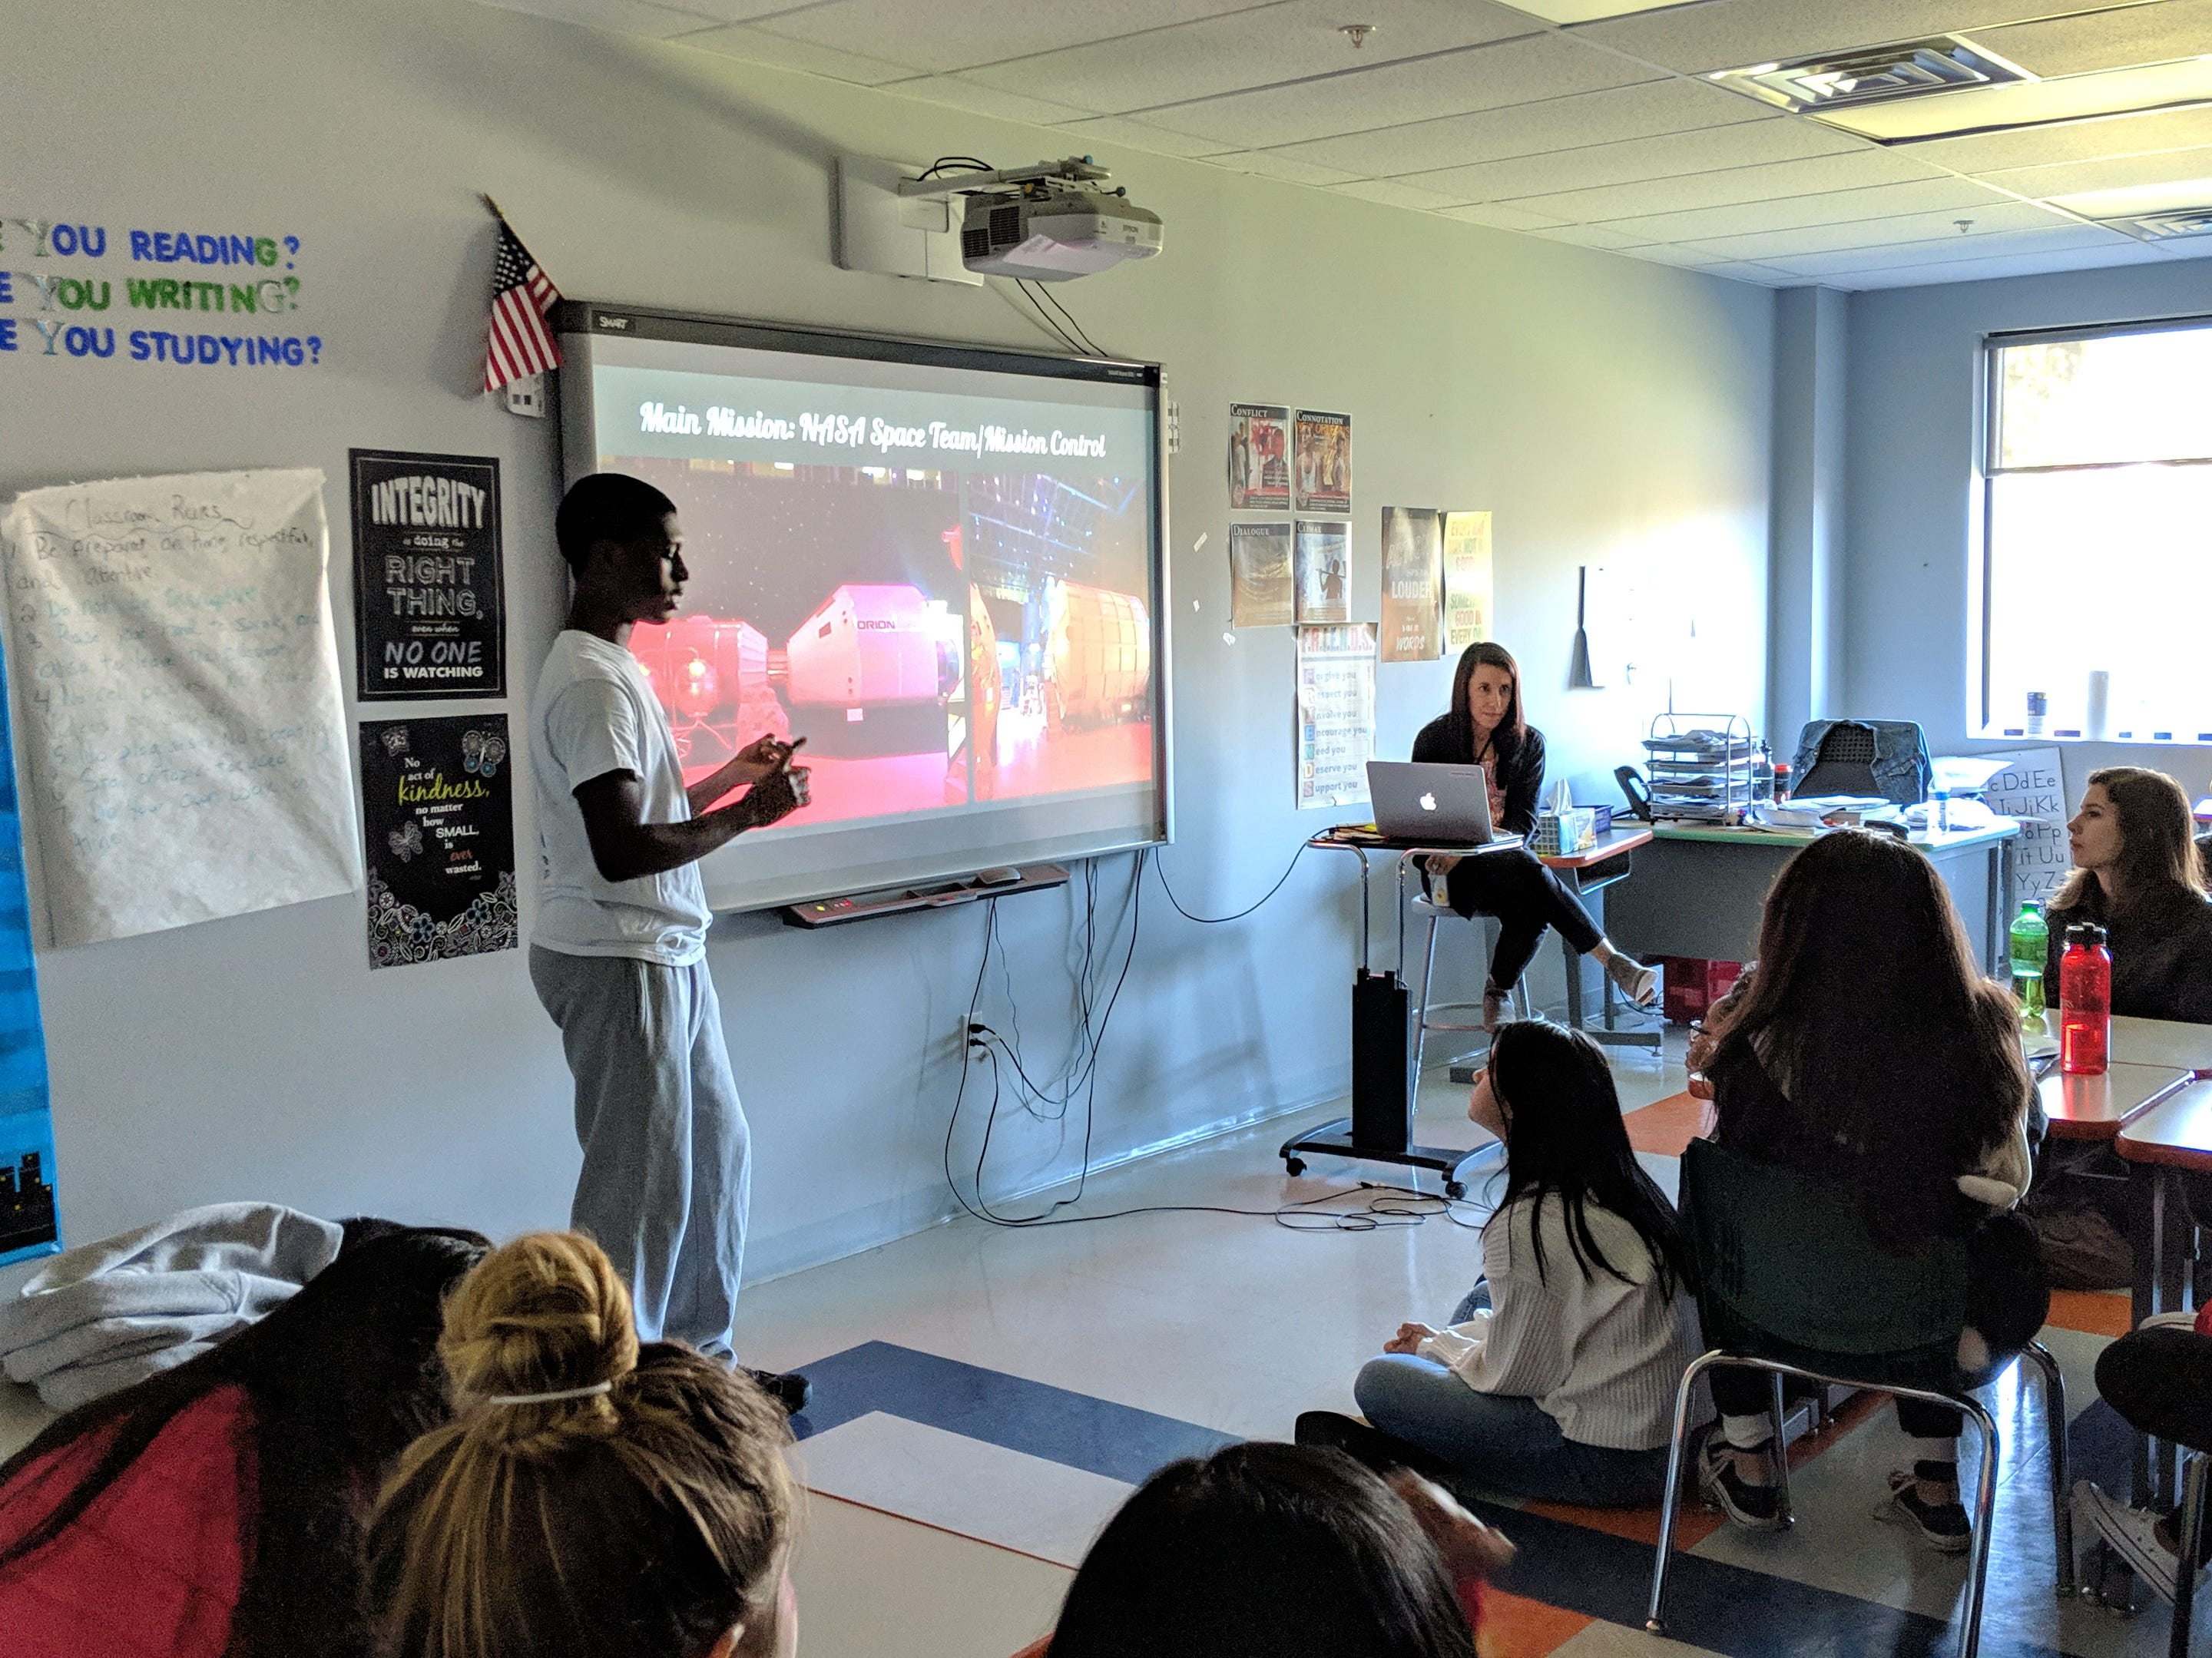 Pascal Osei, a 10th grader at Thomas Edison EnergySmart Charter School, gave a presentation to his class about his experience over the summer at Advanced Space Academy at Space Camp USA located in Huntsville, Alabama